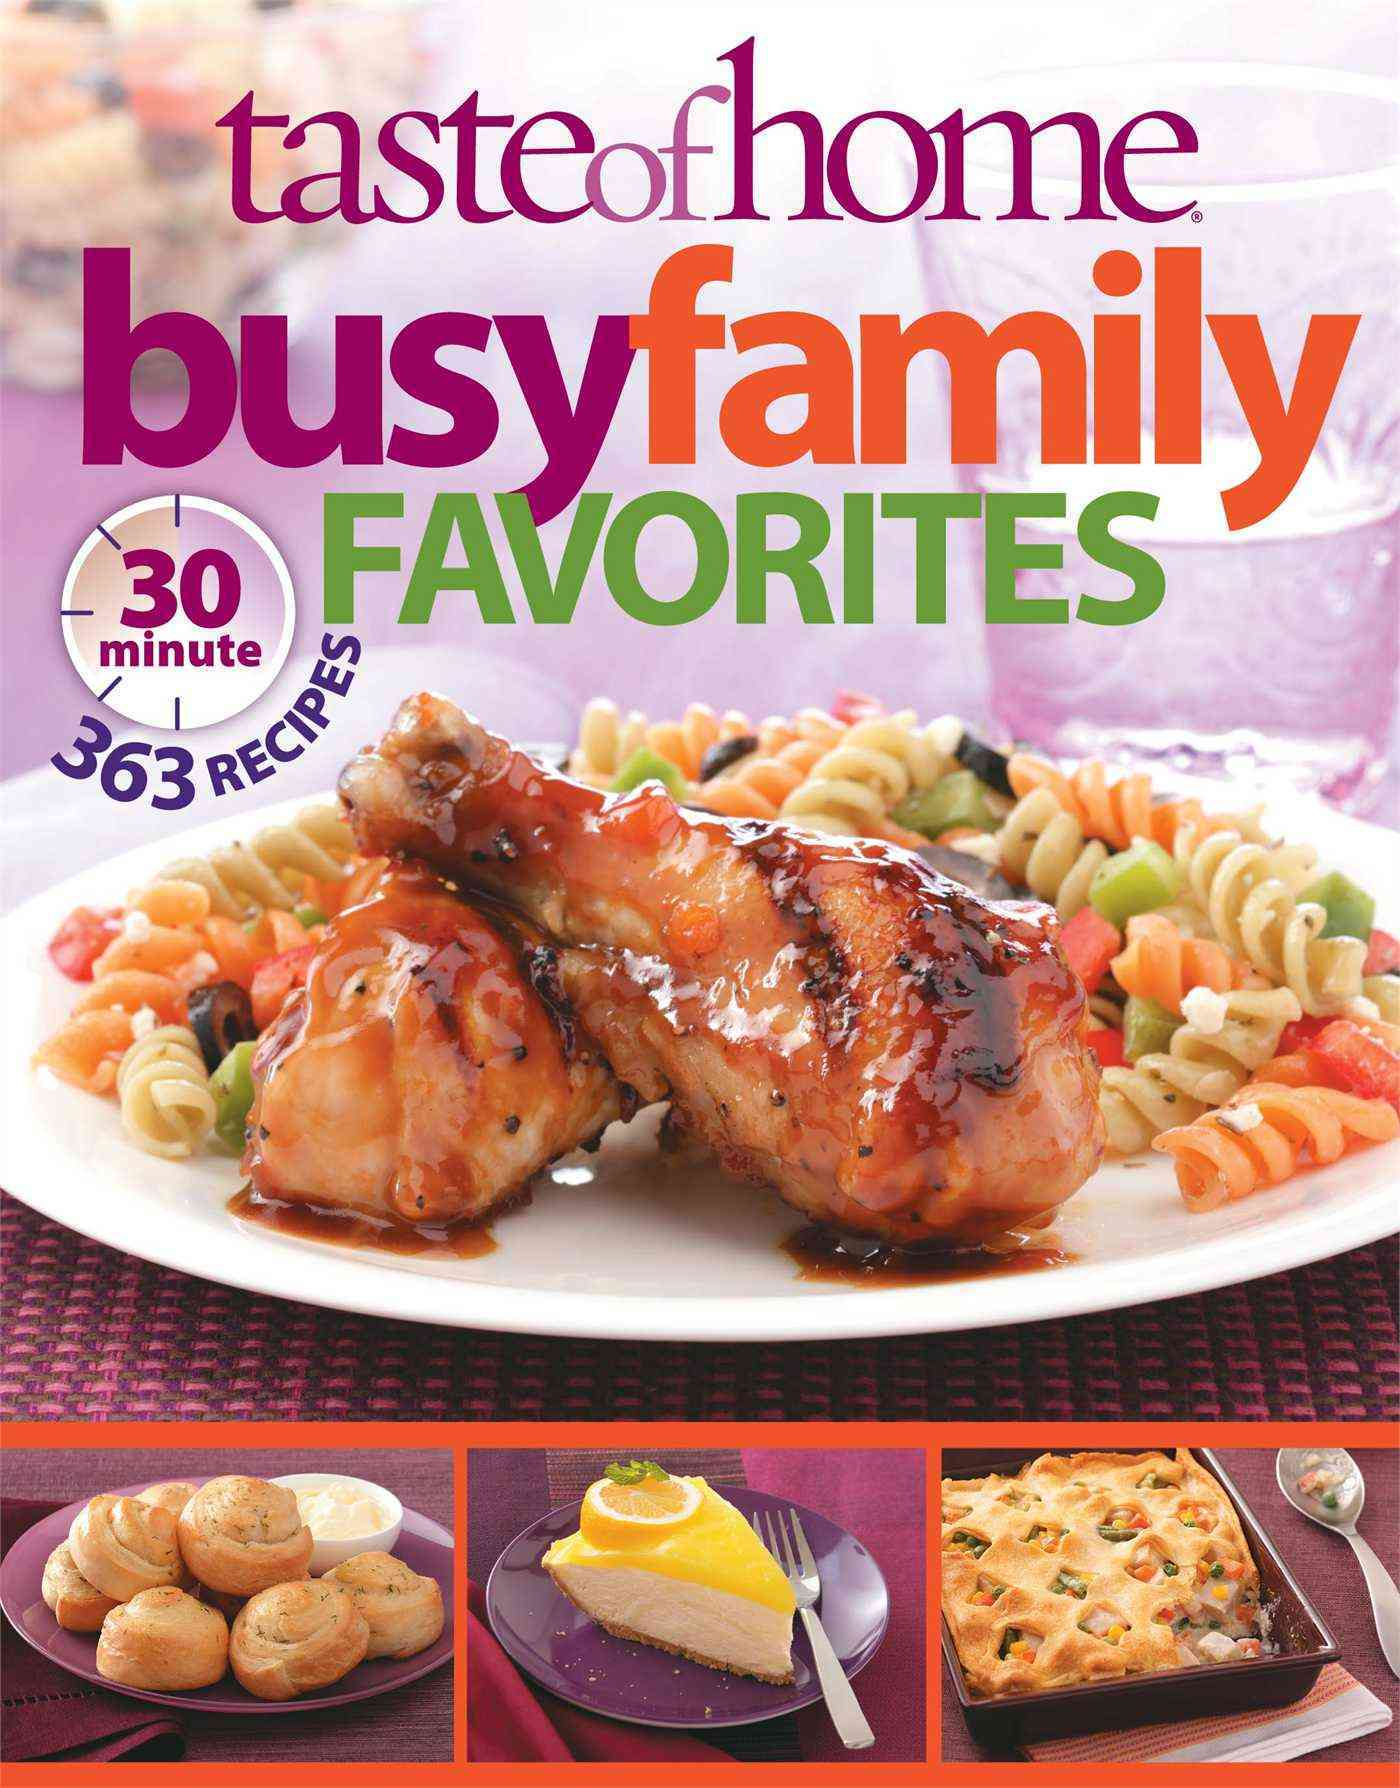 Busy Family Favorites: 363 30-minute Recipes (Paperback)